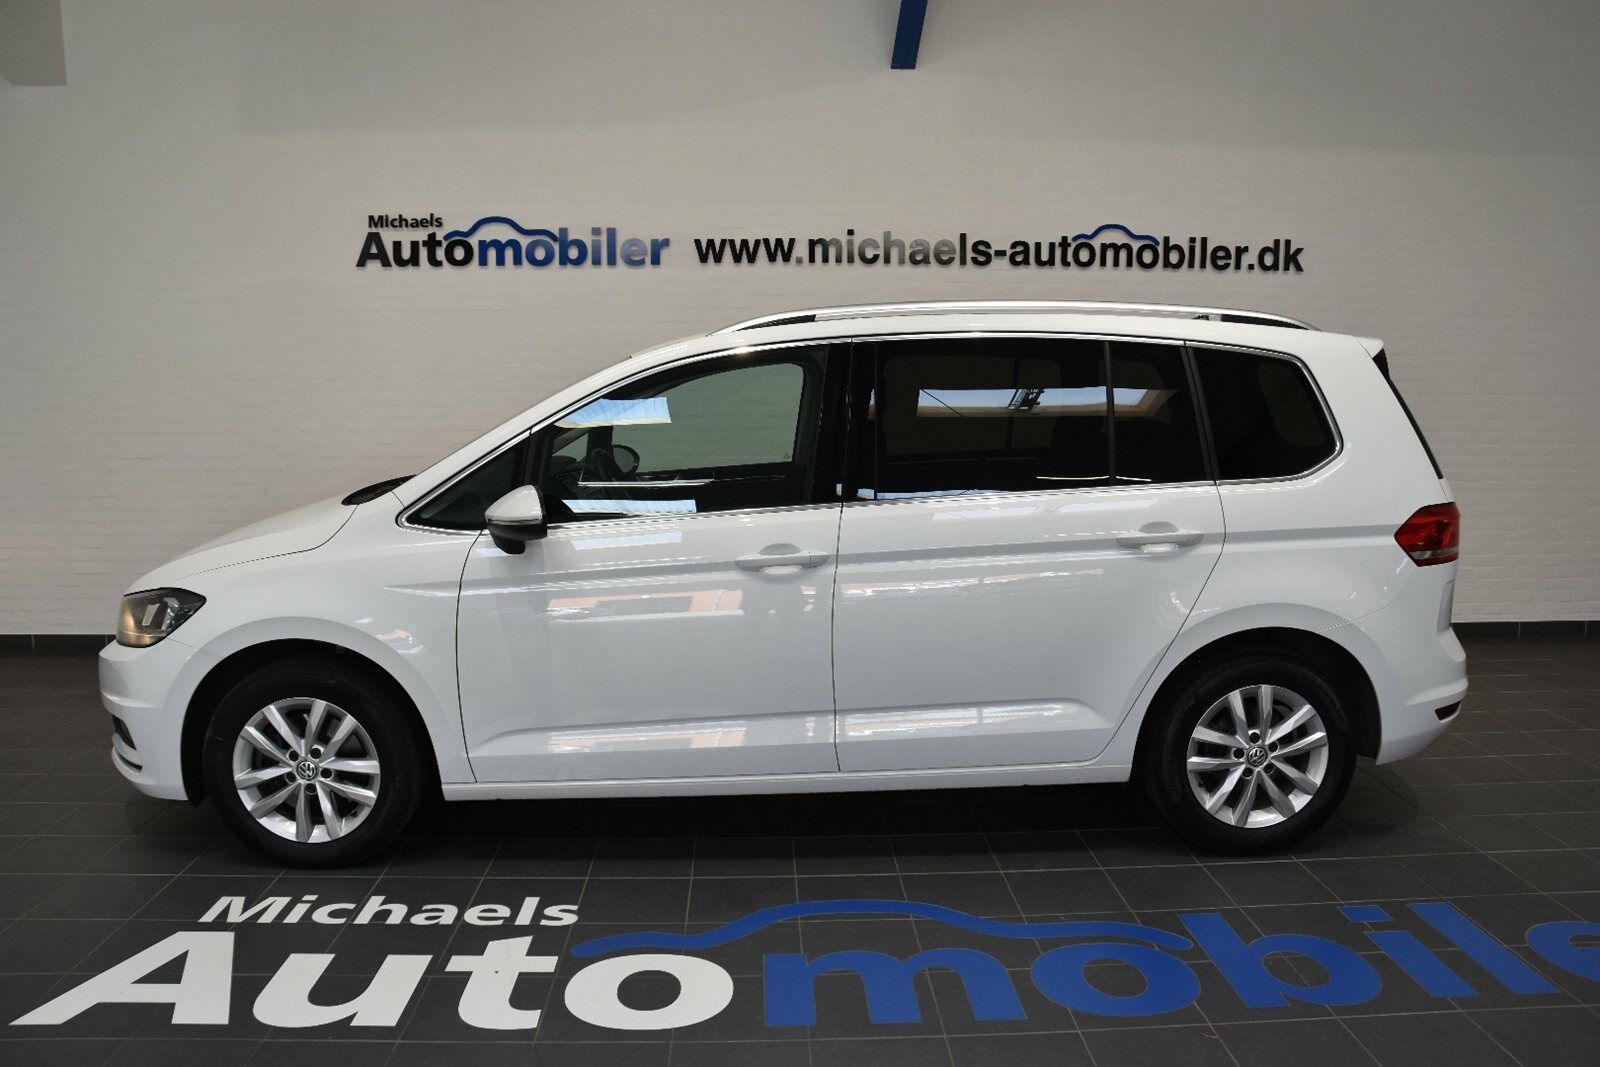 VW Touran 1,6 TDi 115 Highline DSG BMT 5d - 353.500 kr.